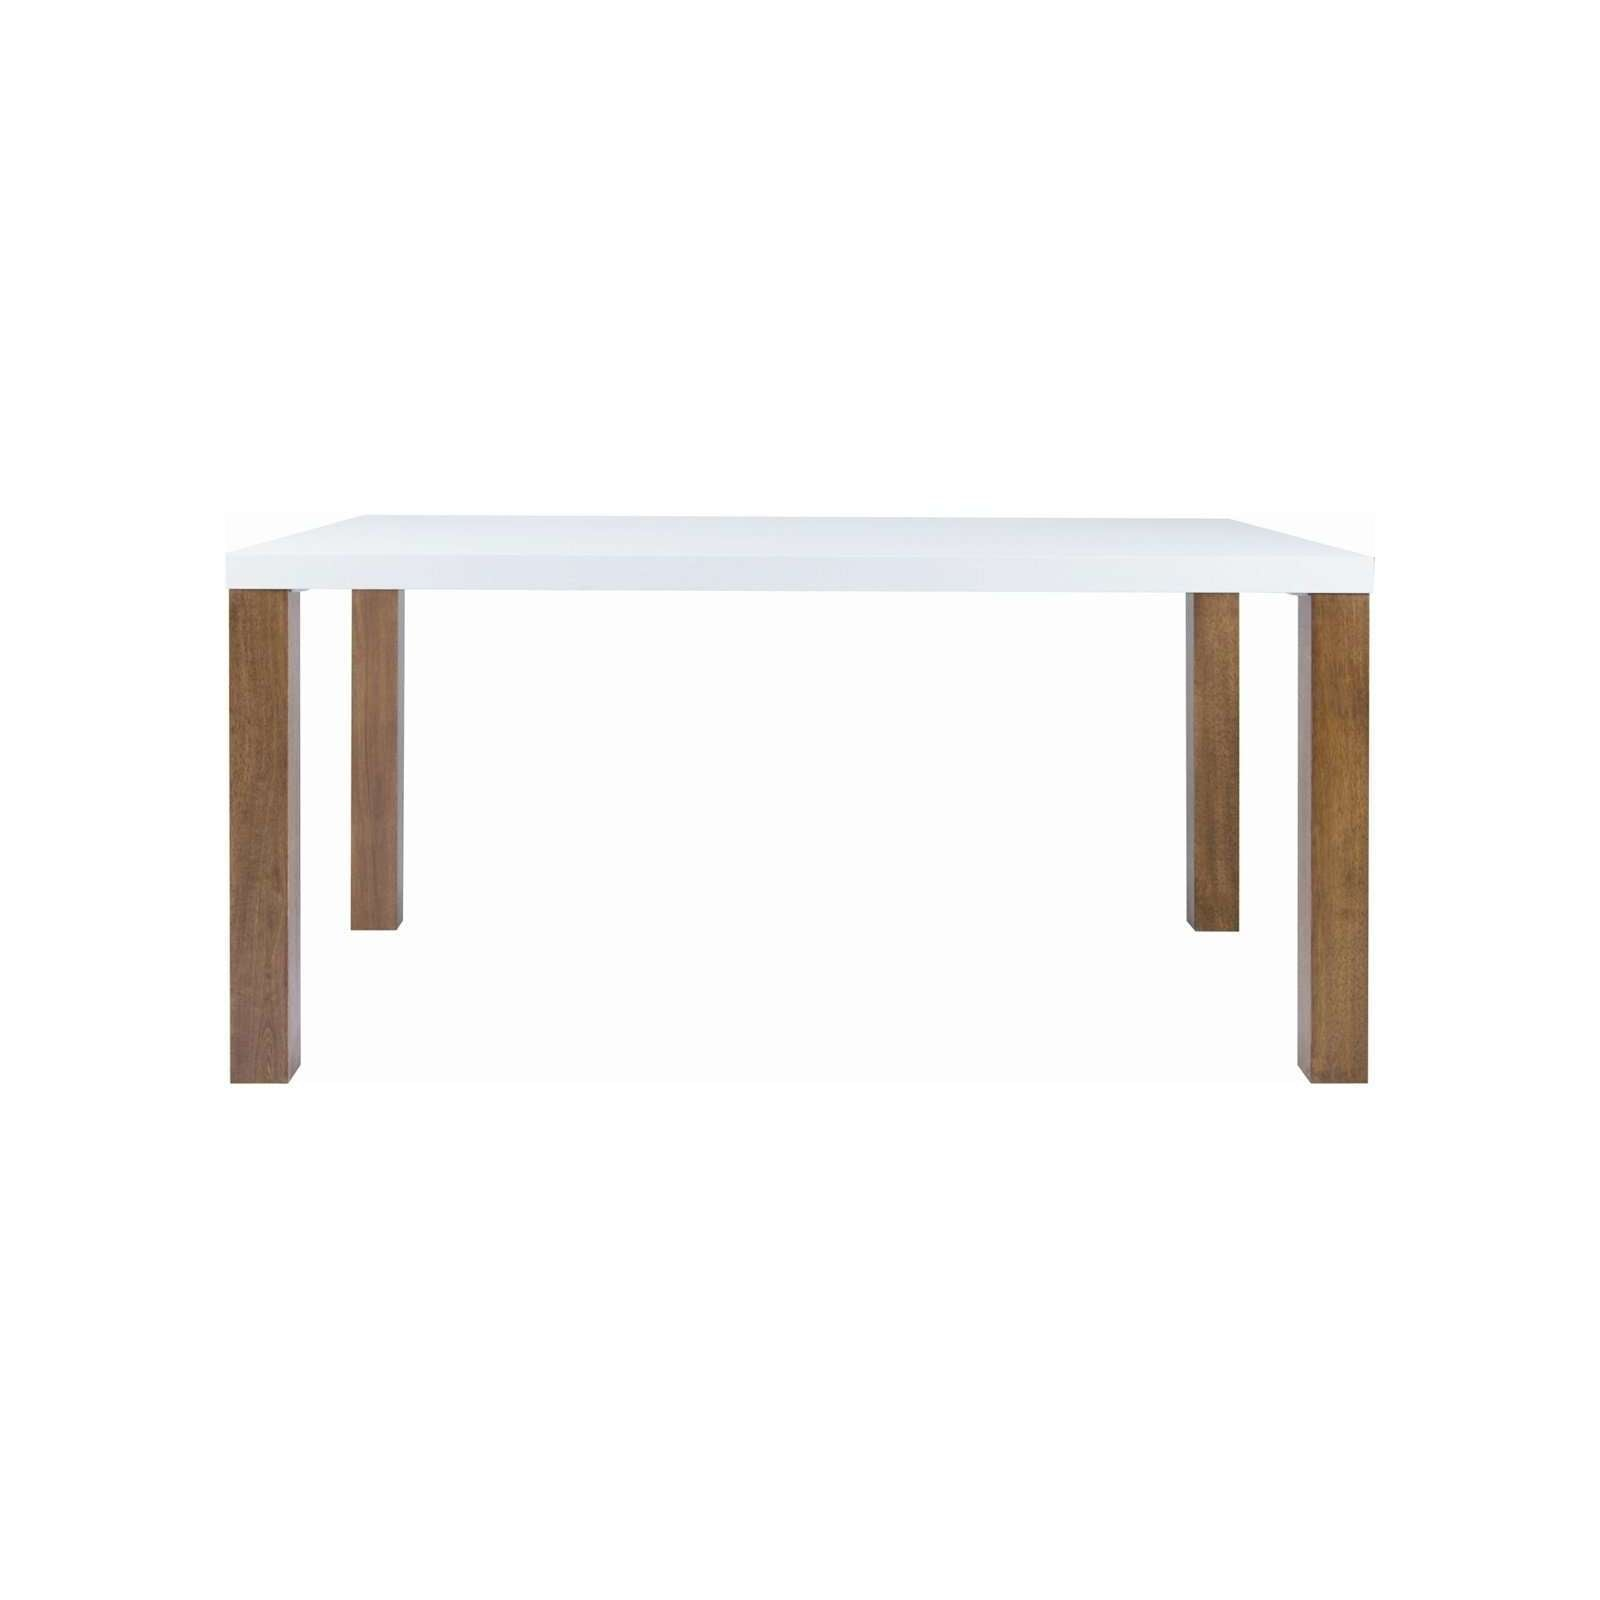 BRENT 1.5m Table in White Lacquered with Walnut Color Straight Leg